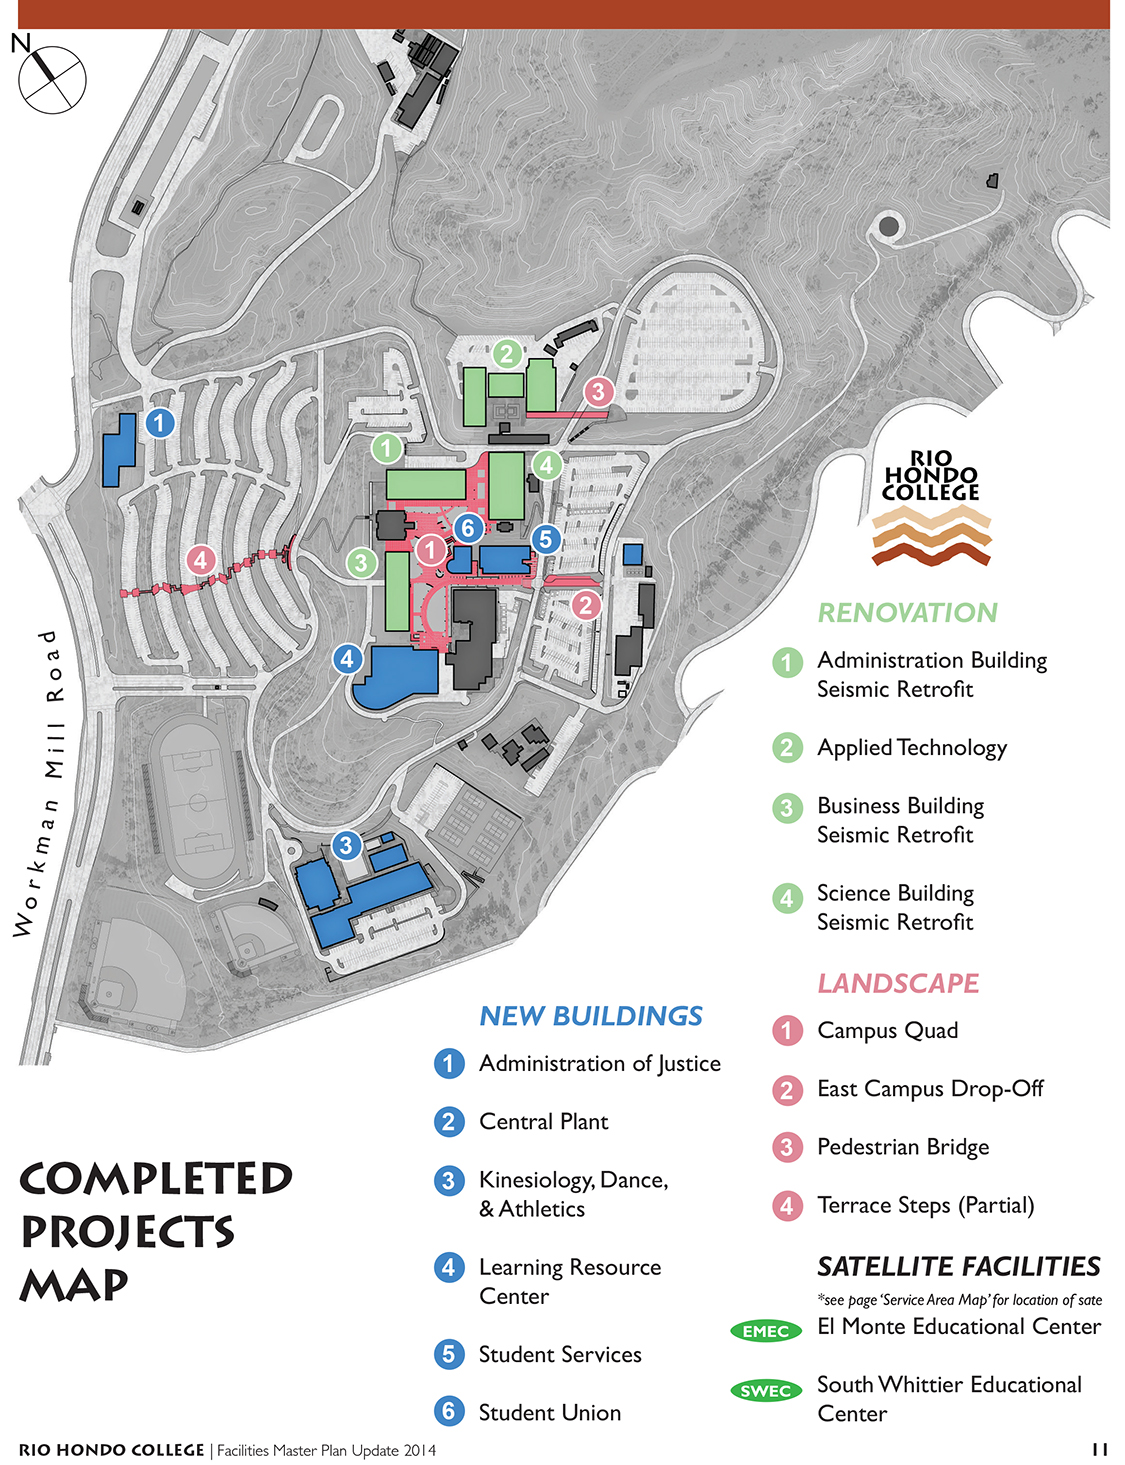 Rio Hondo College Facilities Master Plan Update 2014